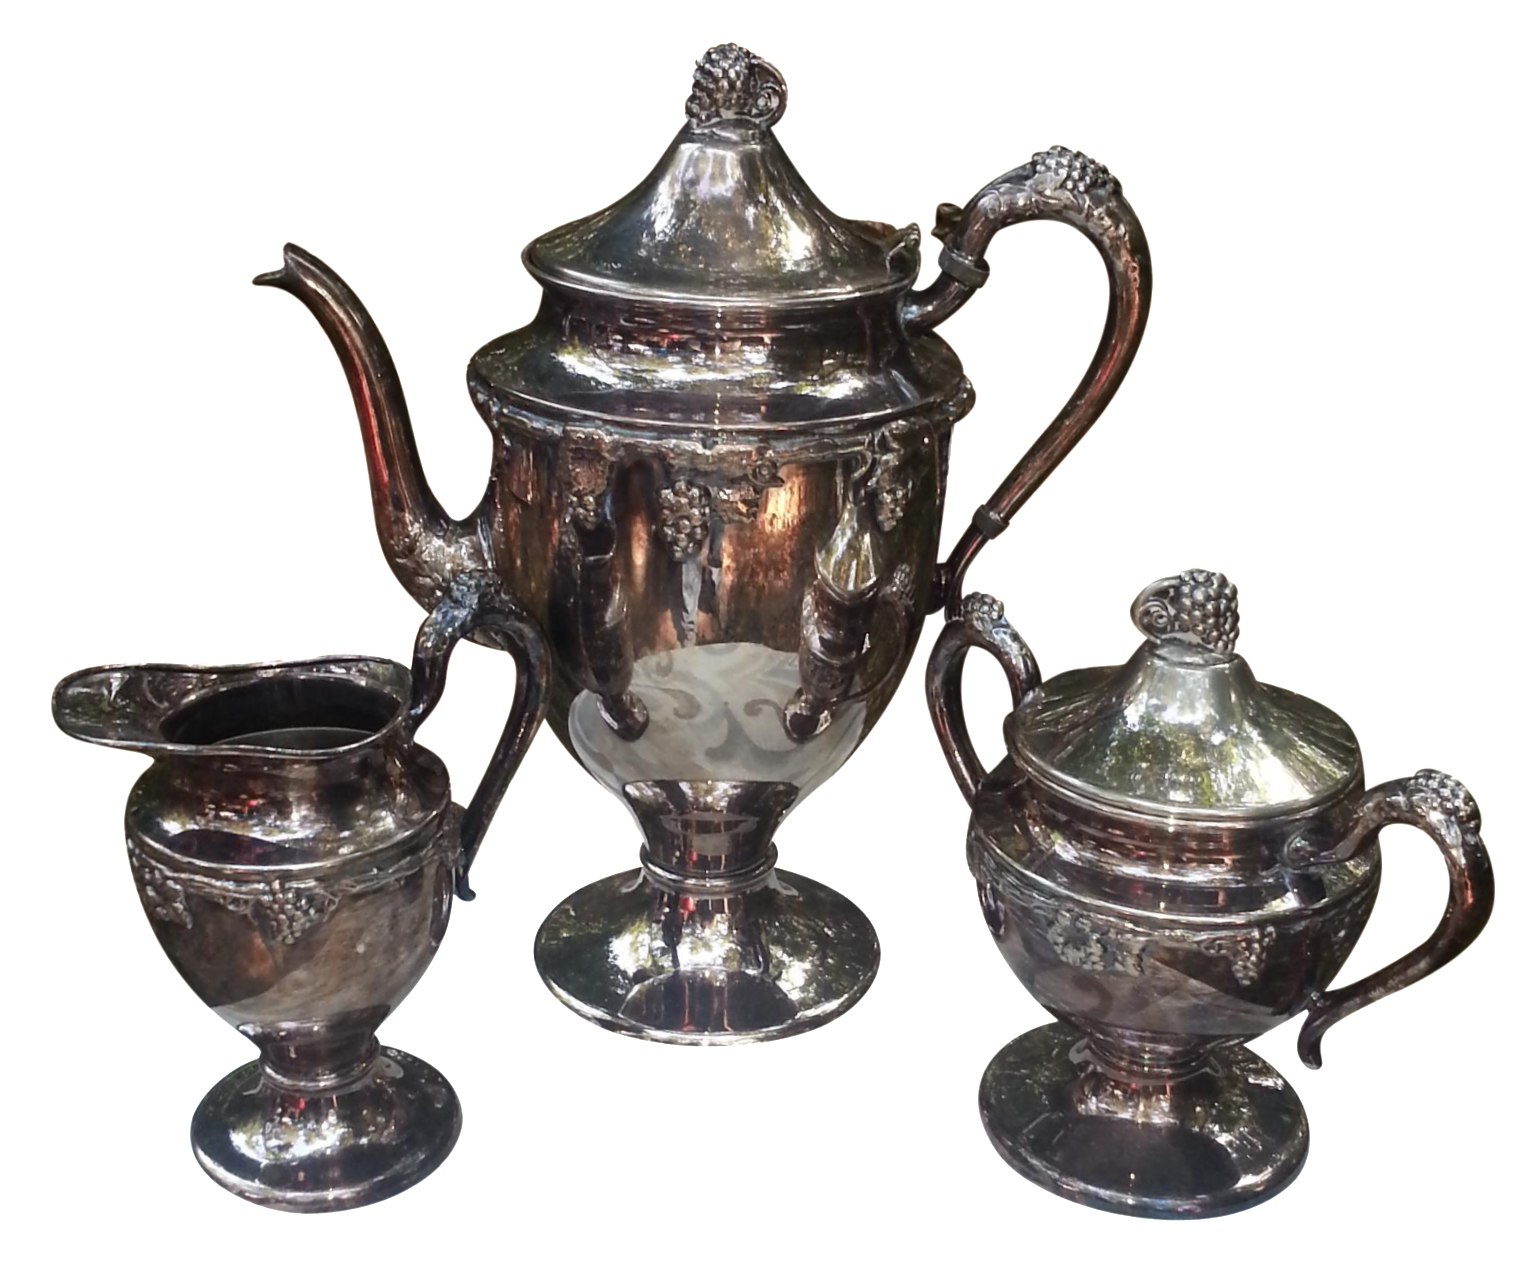 Silver Plated Coffee Set - Set of 4 - Image 1 of 7  sc 1 st  Chairish & Silver Plated Coffee Set - Set of 4 | Chairish